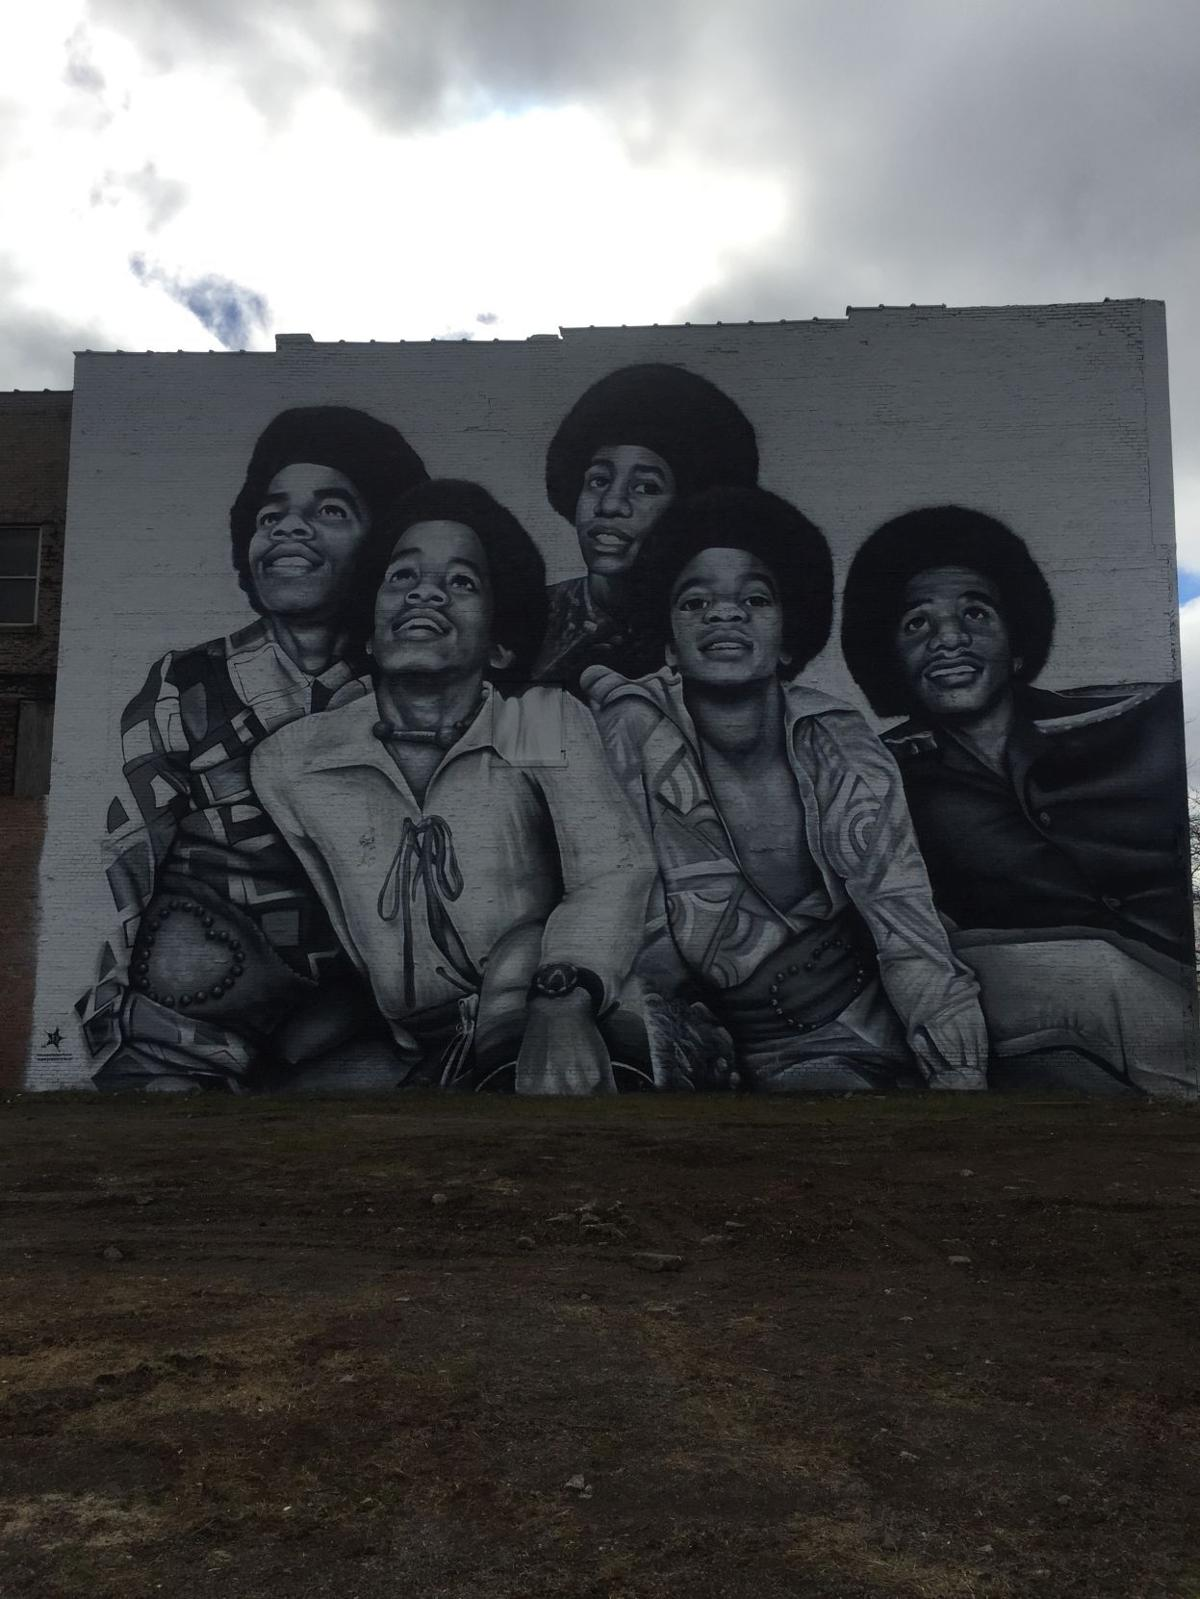 Four story jackson 5 mural towers in downtown gary 219 for Jackson 5 mural